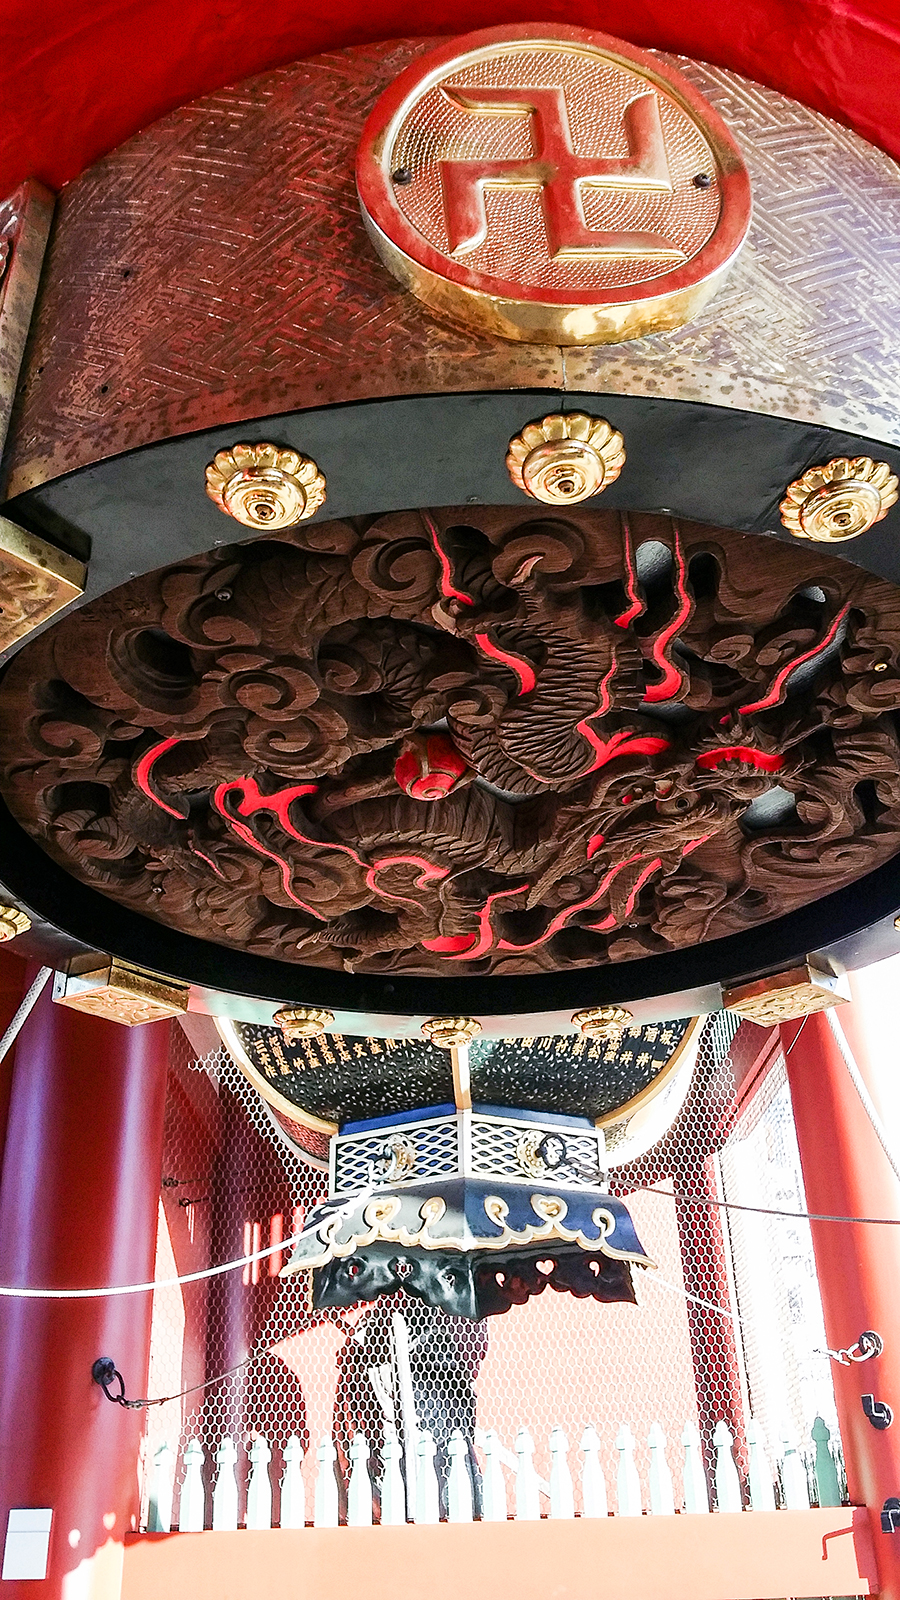 Underside of lantern at the Kaminarimon of Sensoji, Asakusa Tokyo Japan.